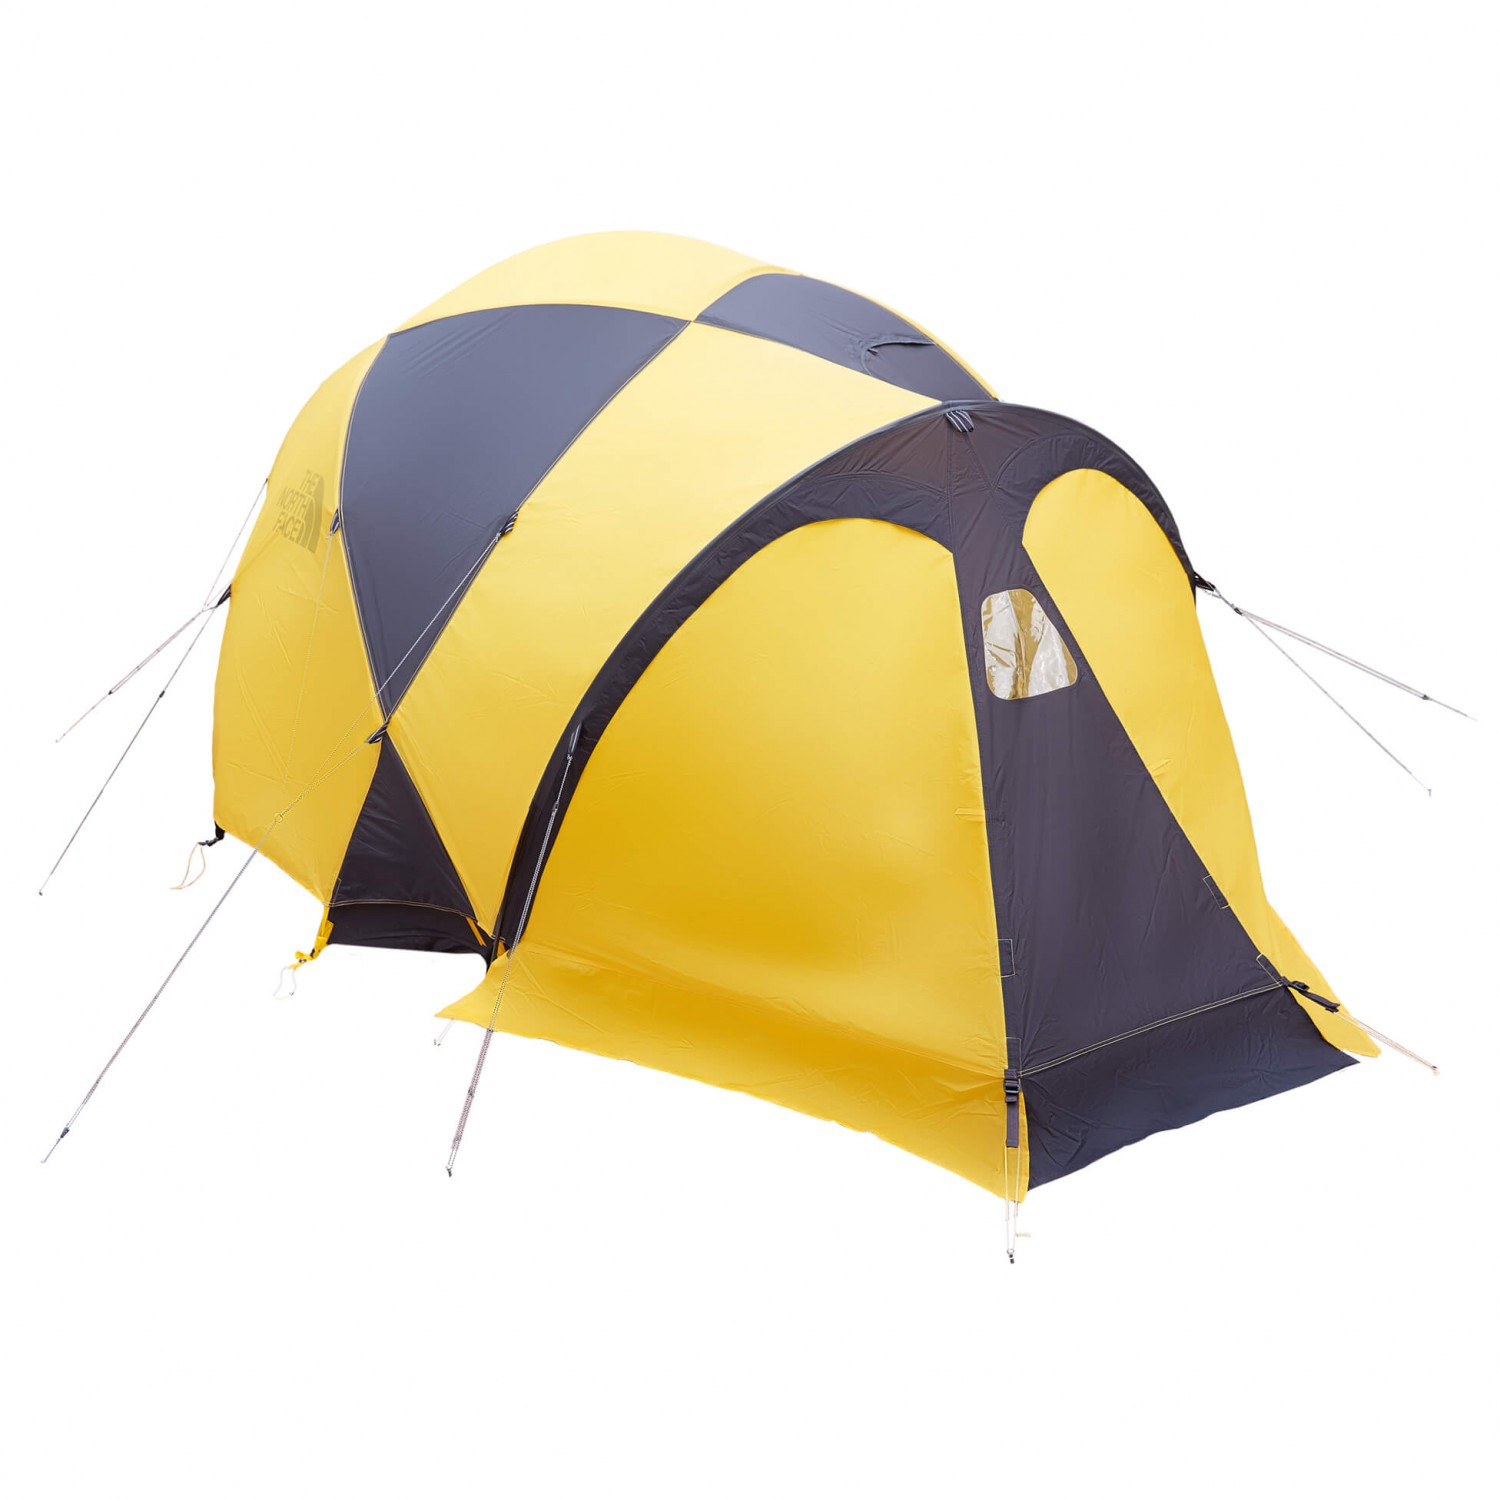 sc 1 st  Alpinetrek & The North Face Bastion 4 - 4-Person Tent | Buy online | Alpinetrek.co.uk